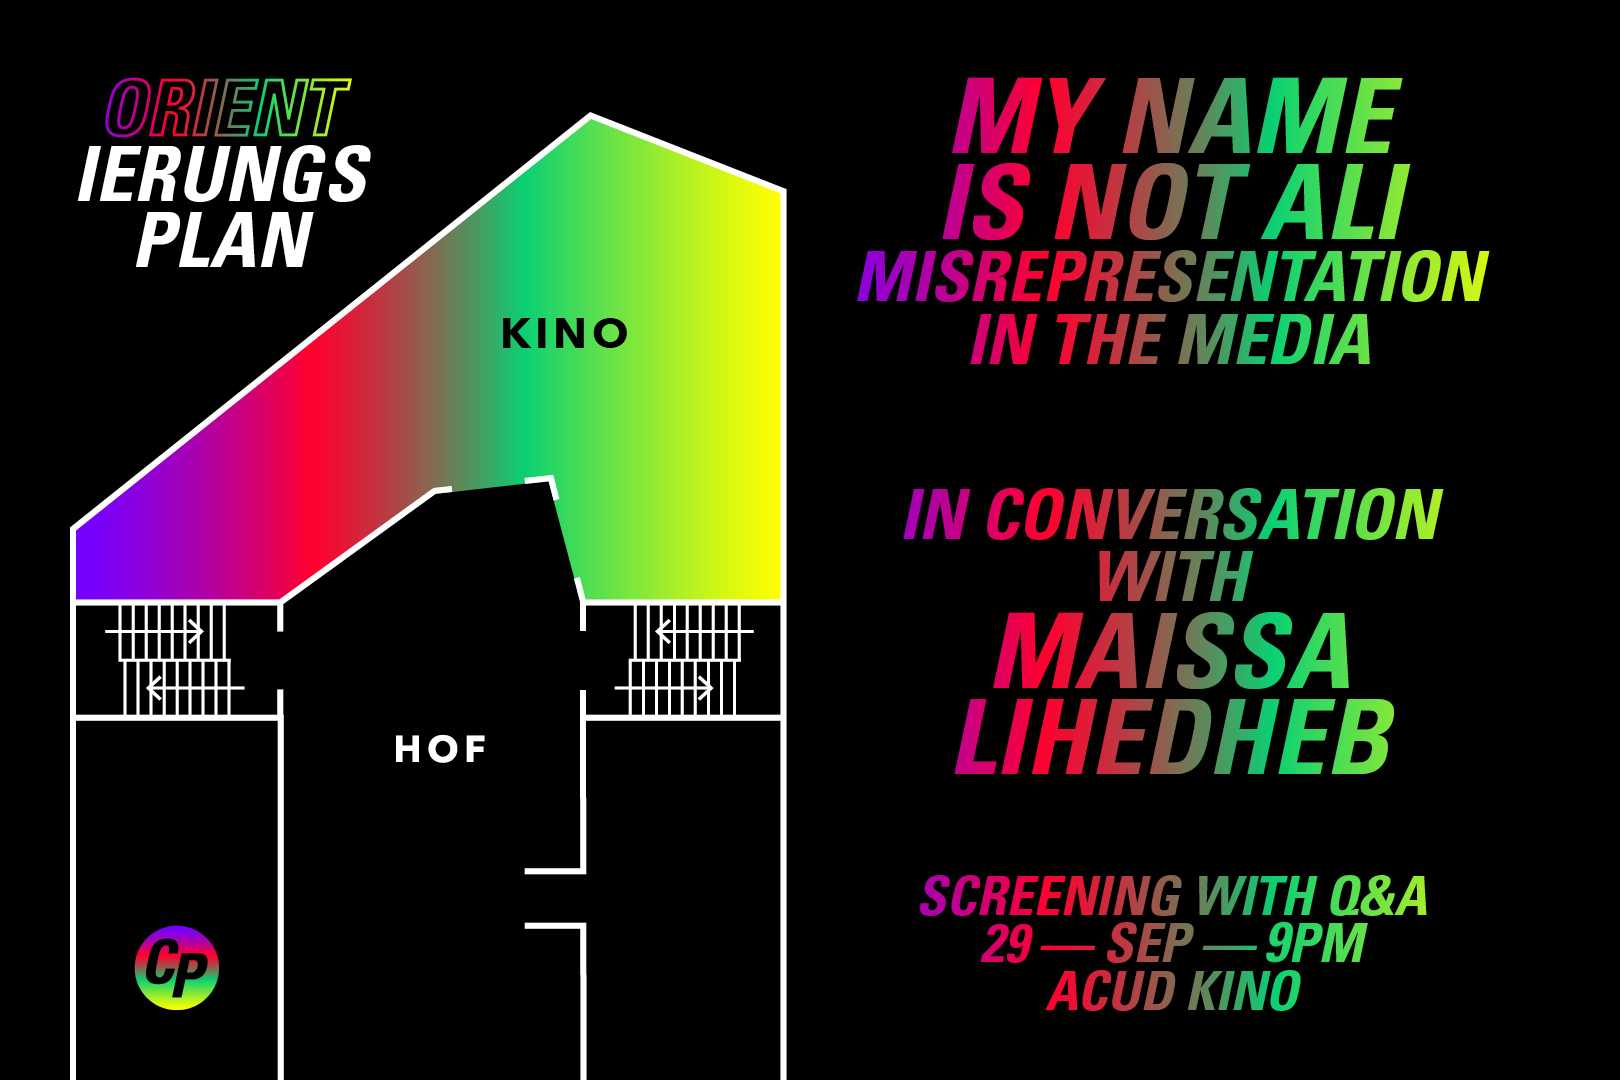 ORIENTierungsplan Episode #2: My Name is Not Ali: Misrepresentation in the Media. Screening & talk with Maissa Lihedheb